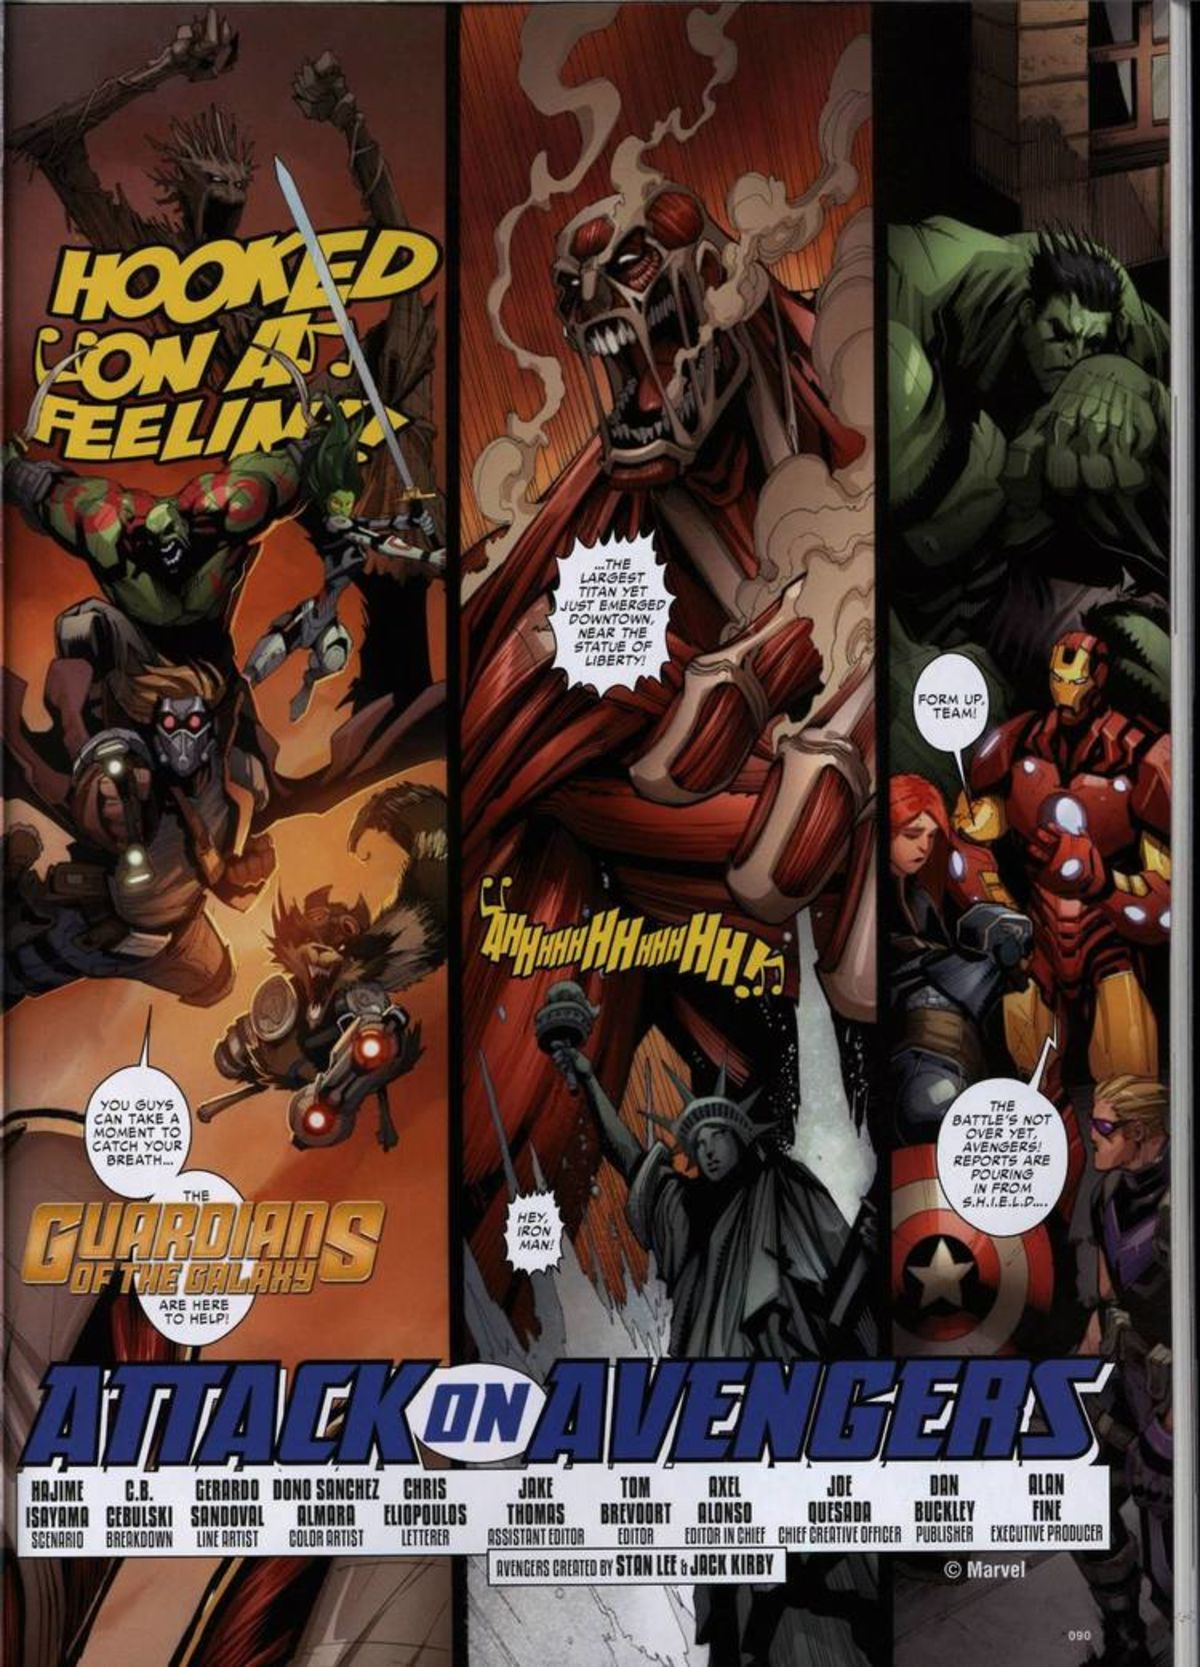 Read the entire 8-page Attack on Titan/Avengers crossover